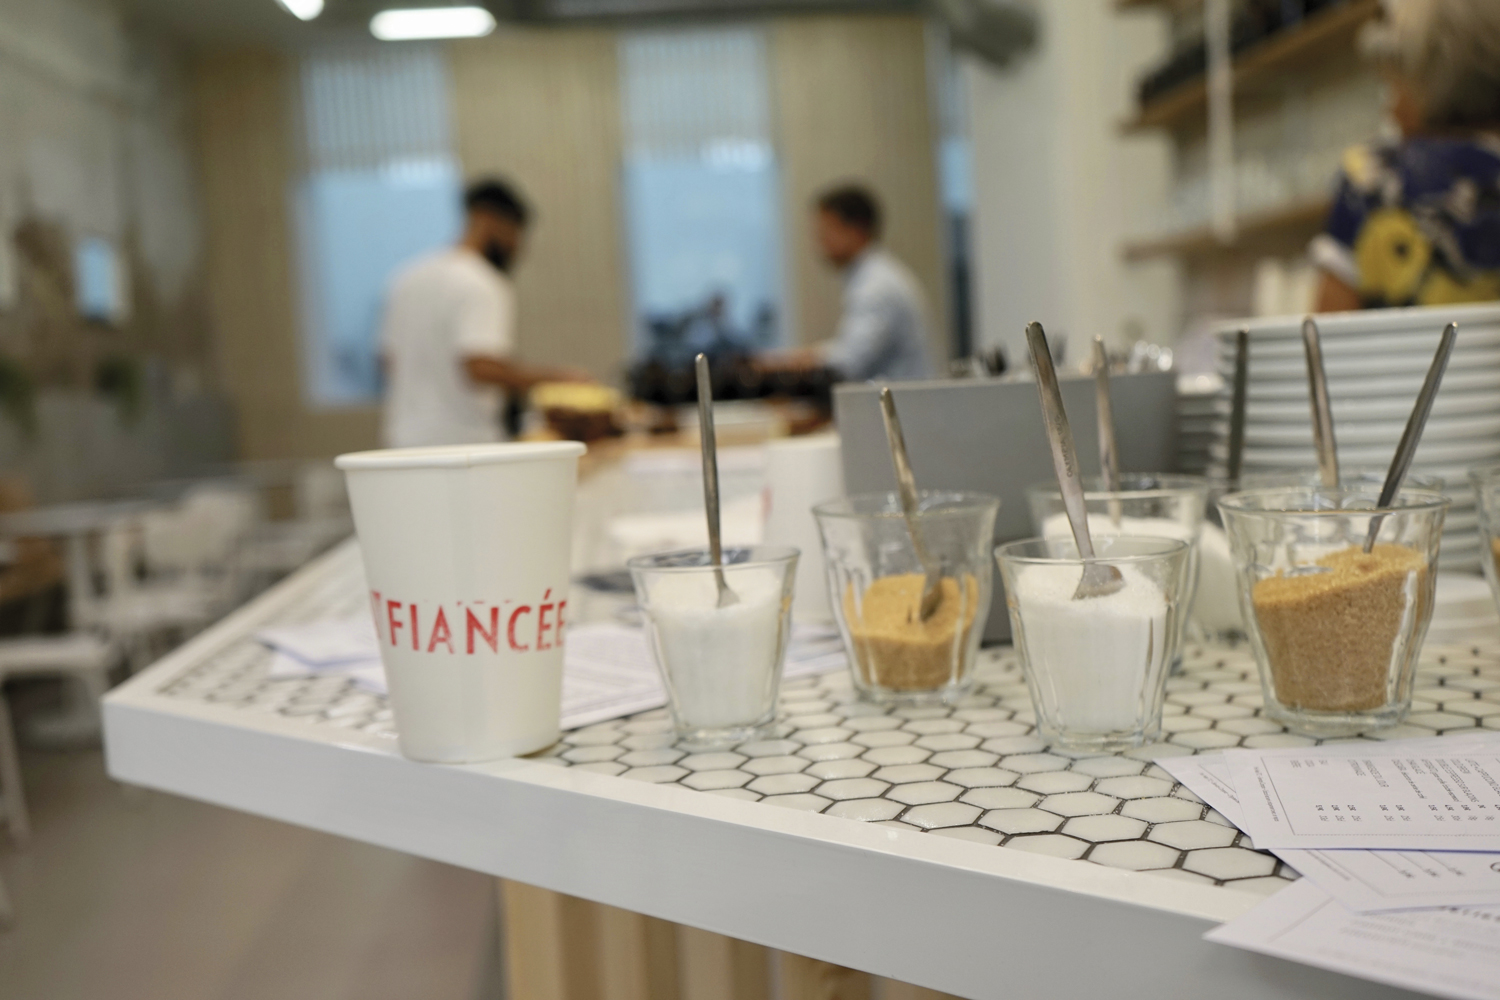 nouvelles-adresses-marseille-love-spots-la-fiancee-salon-de-cafe-brunch